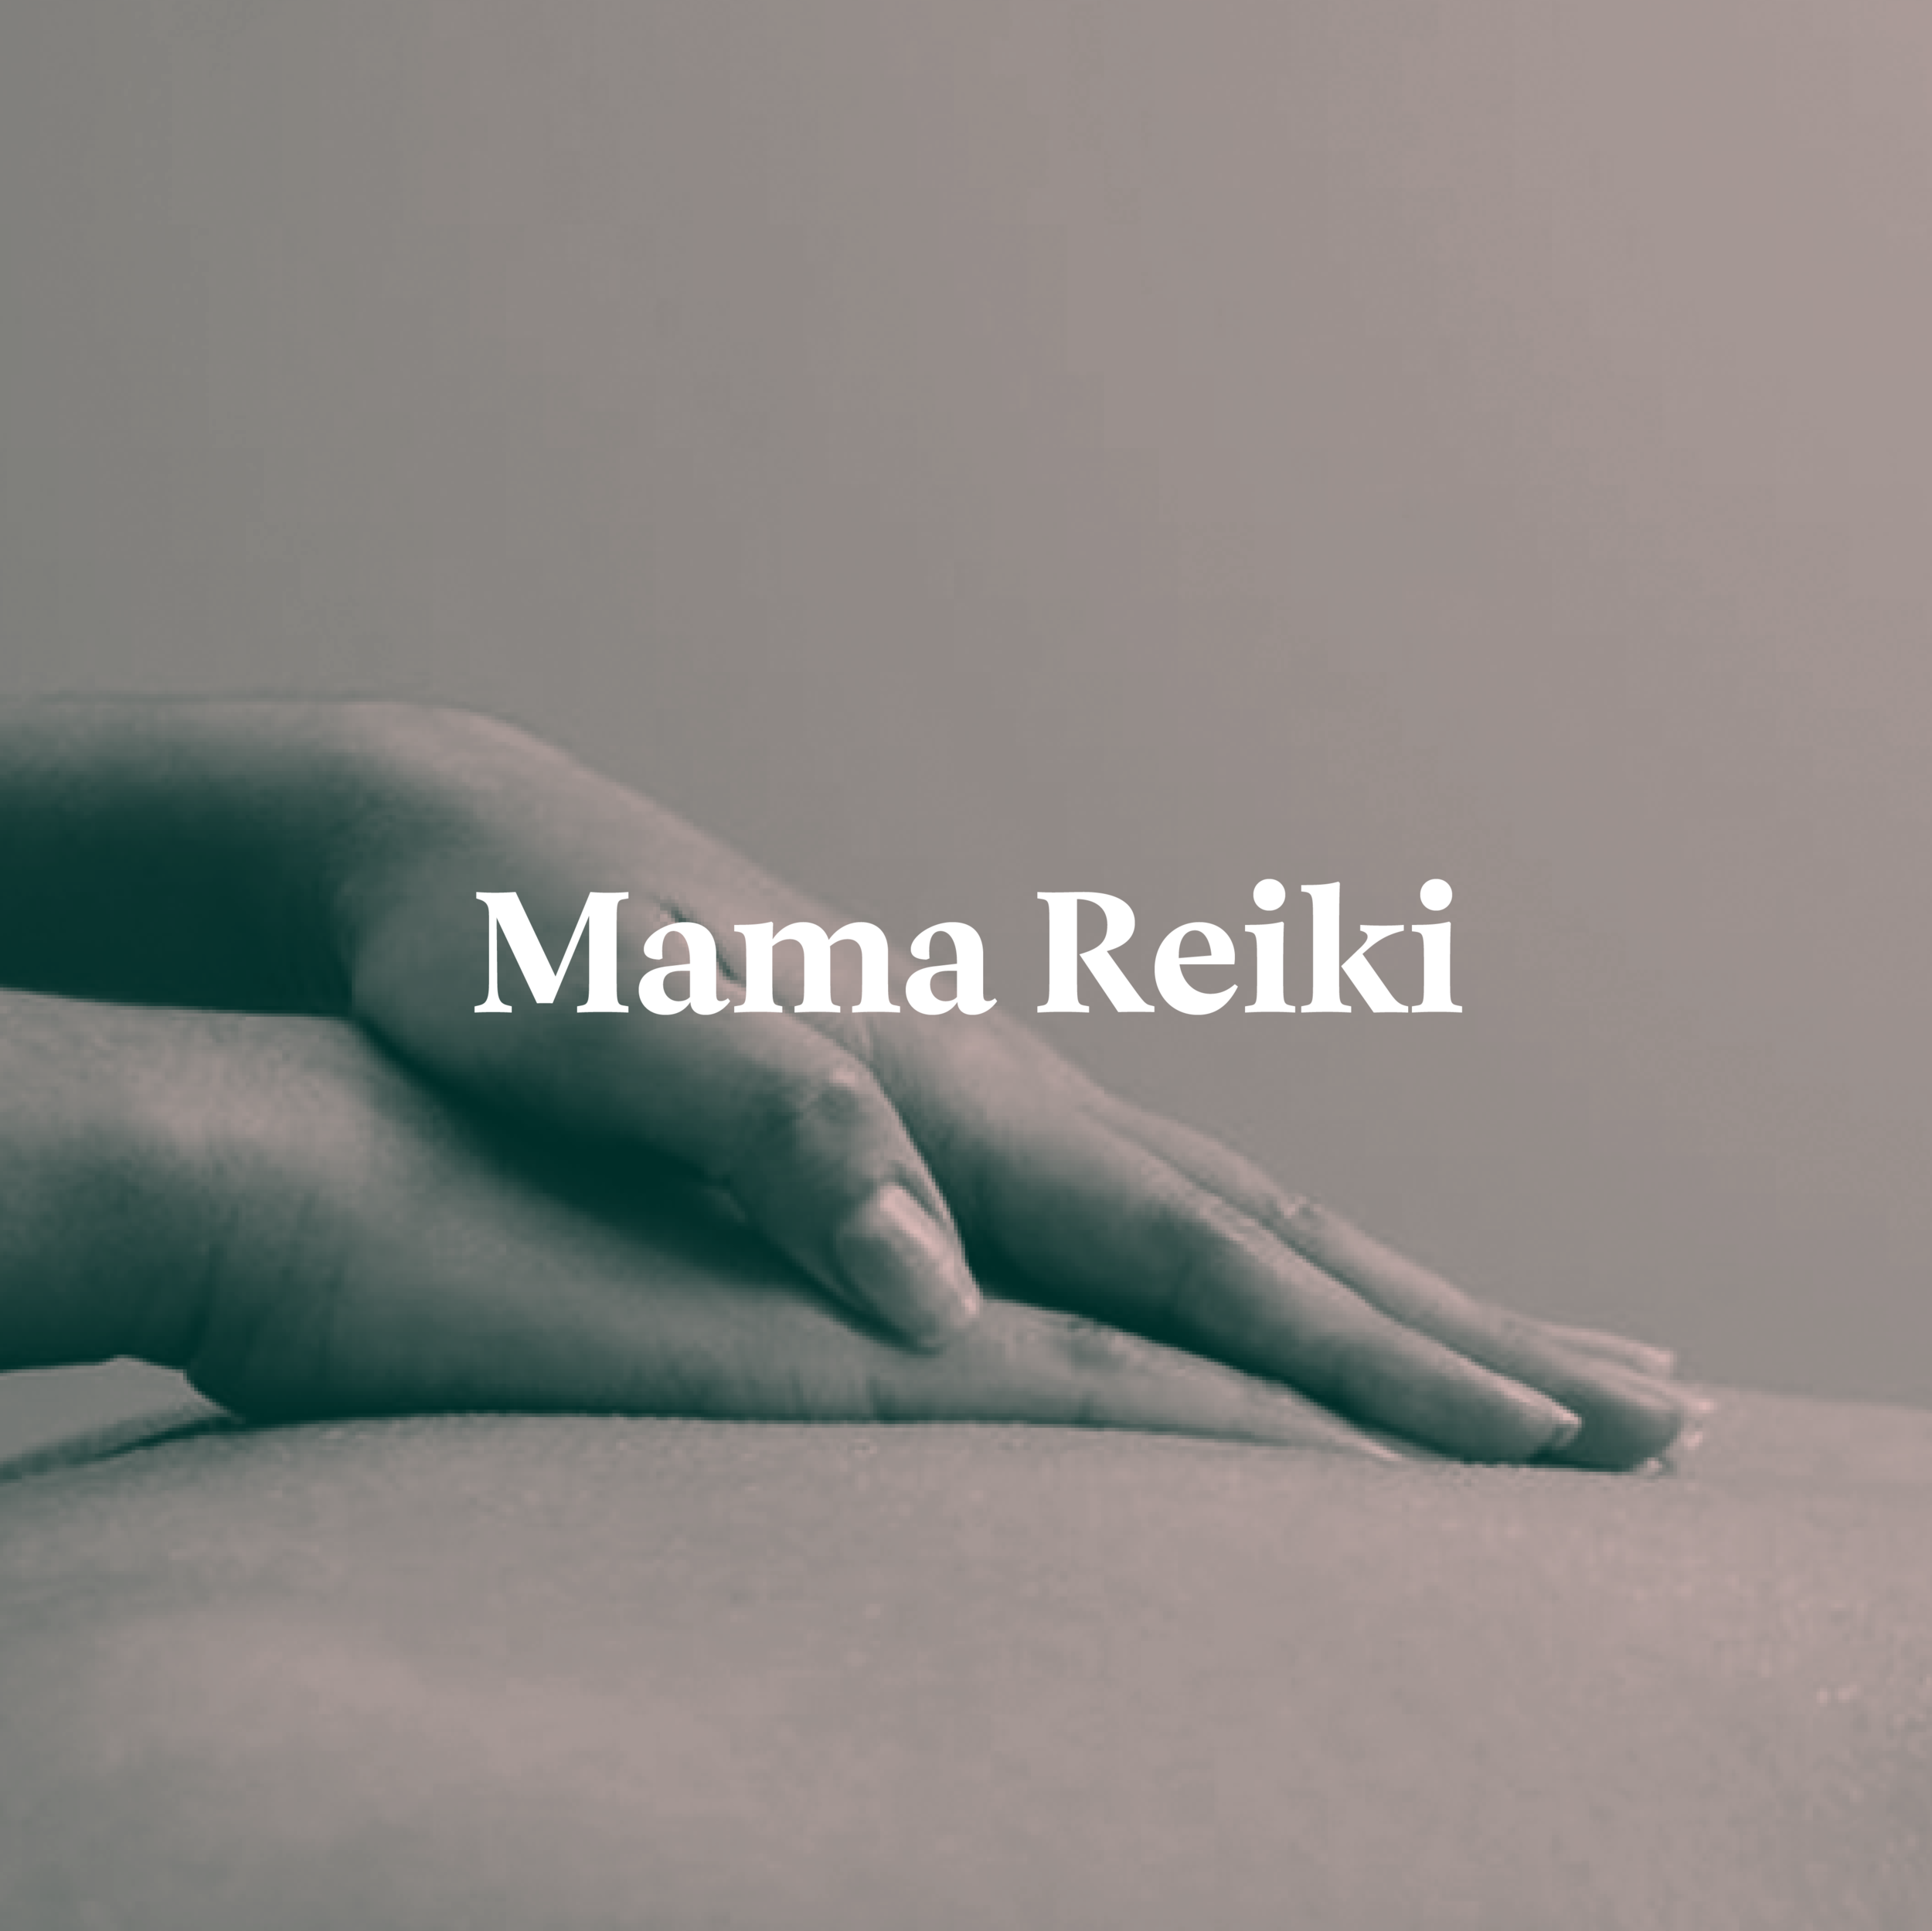 b3_overview images-mama reiki-03-05.png